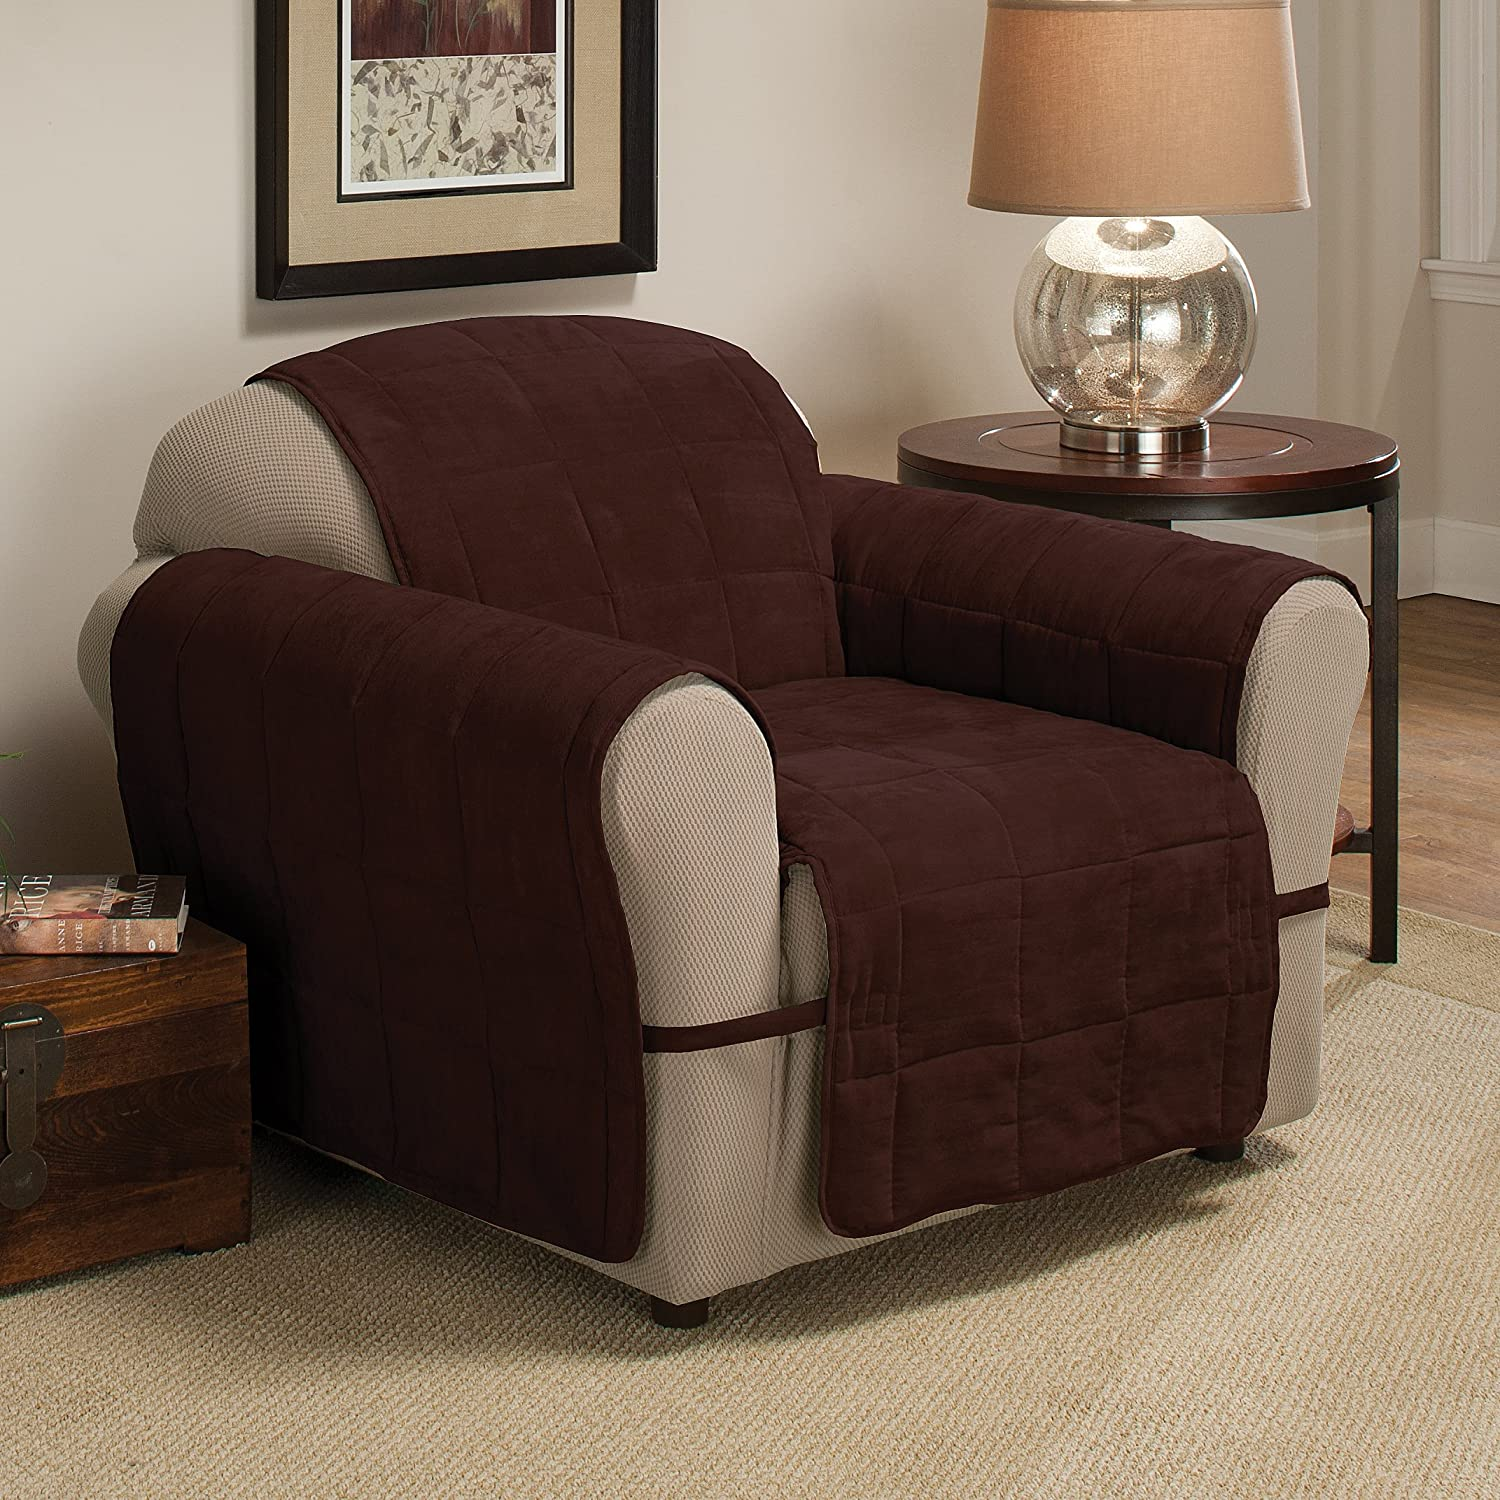 Innovative Textile Solutions Ultimate Furniture Protector Chair, Chocolate